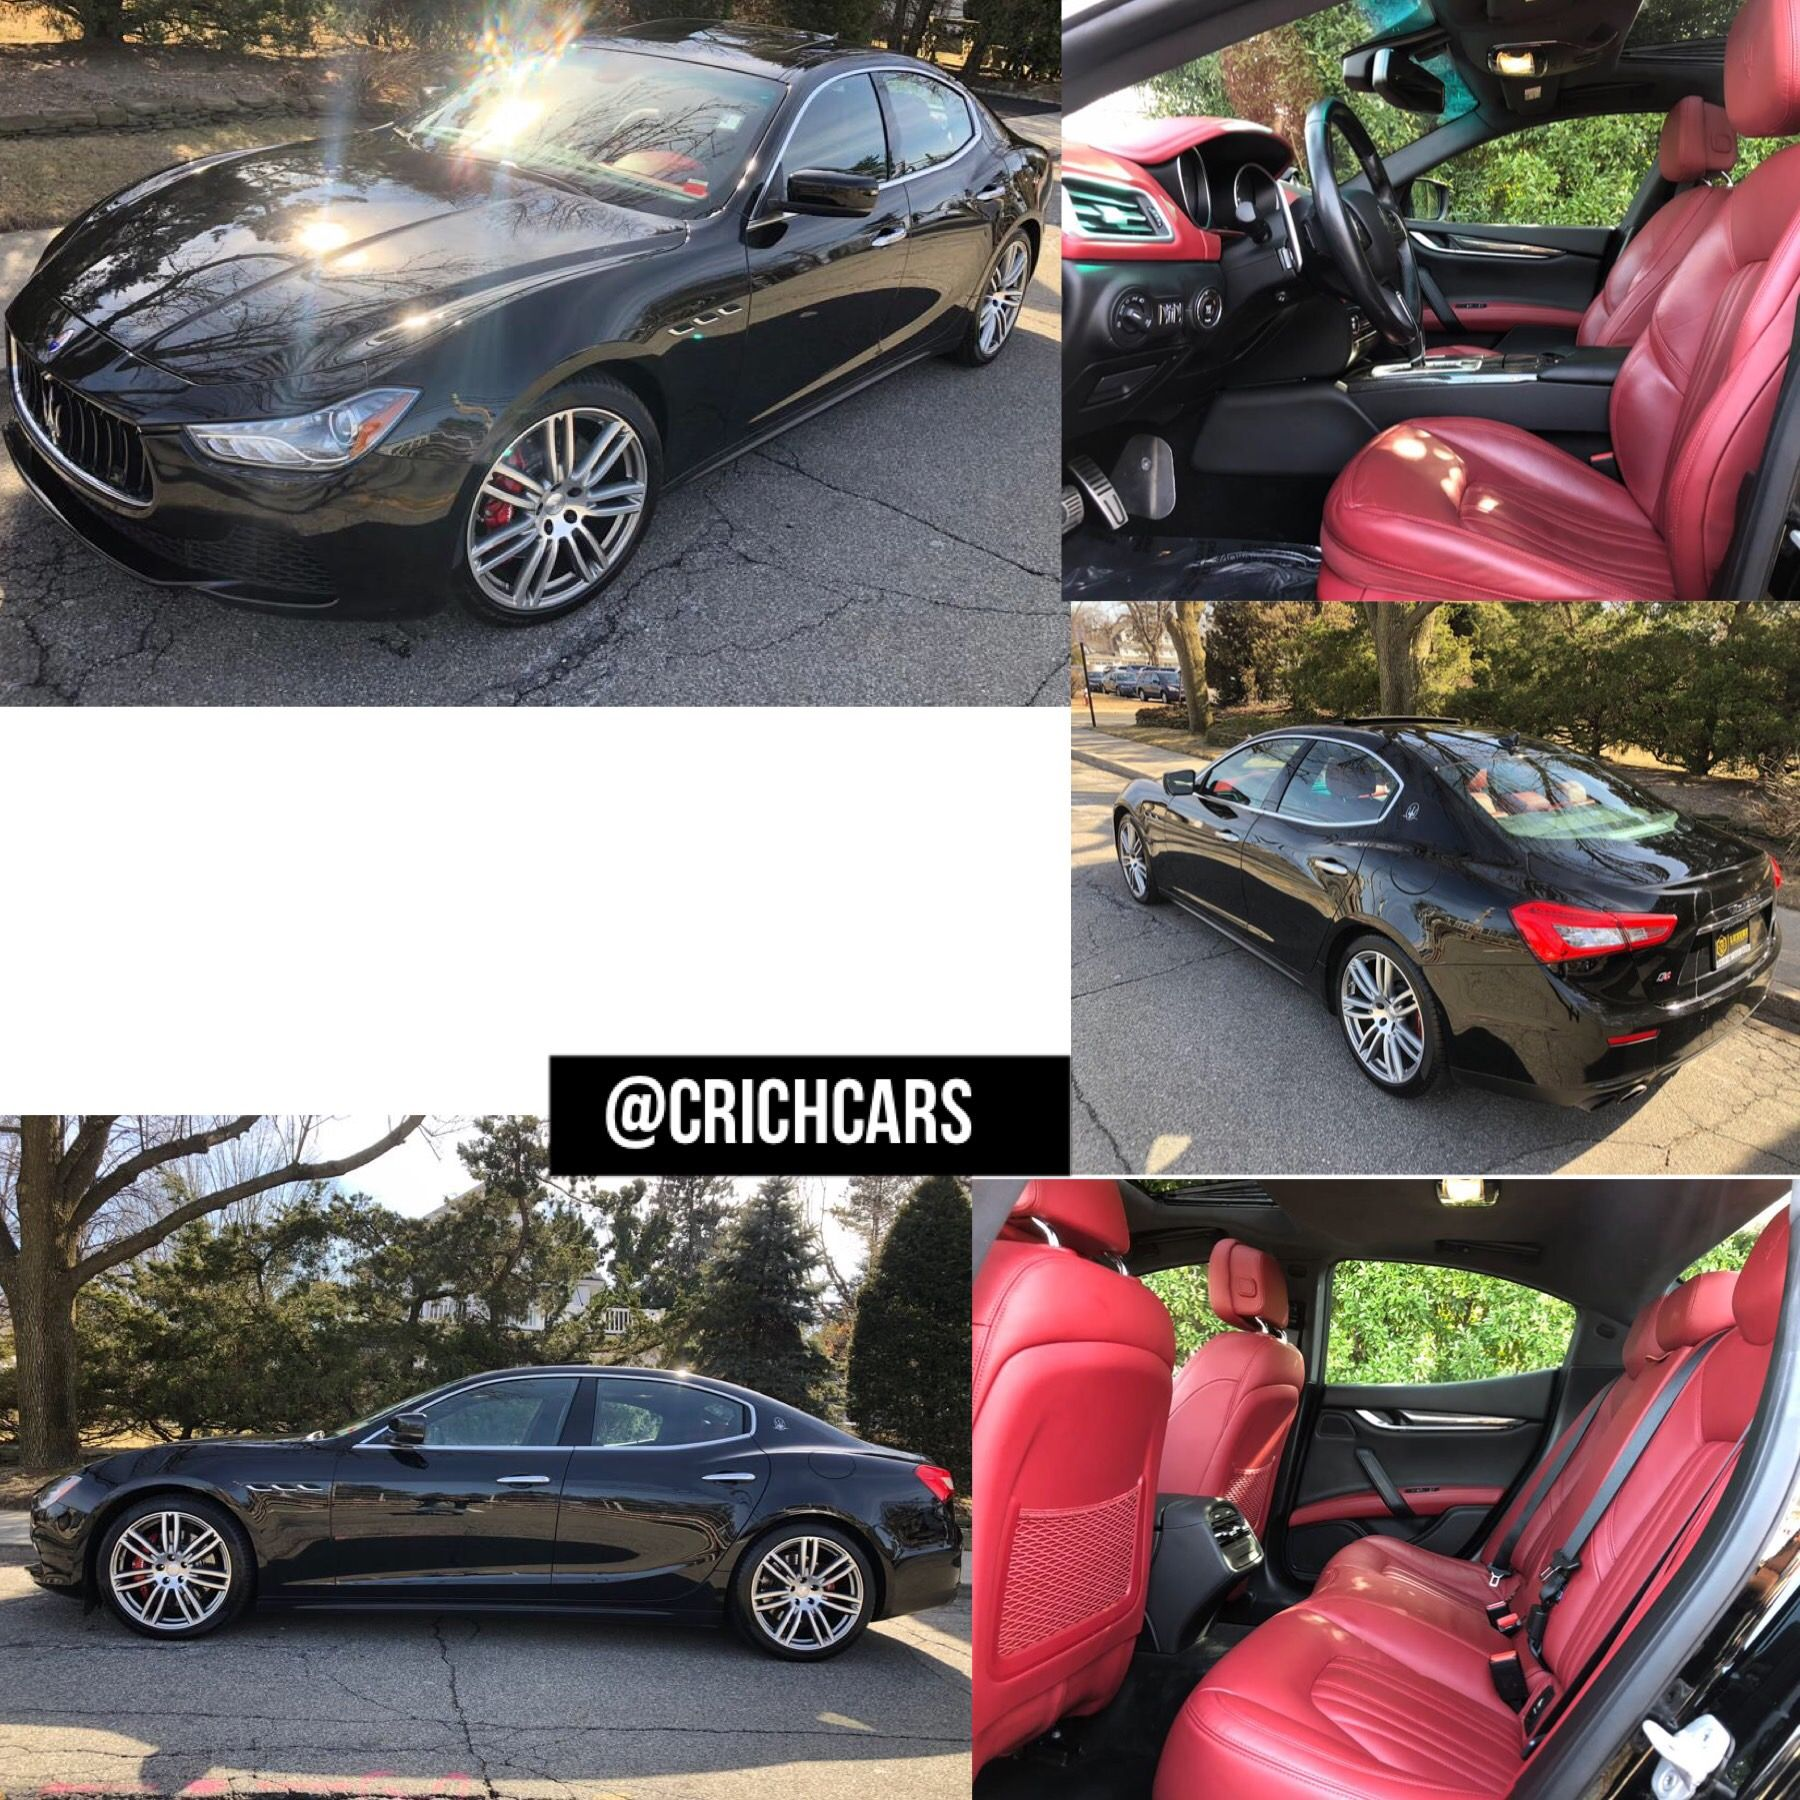 2015 Maserati Ghibli 4dr Sdn S Q4 26K MILES ONLY $379 A MONTH TEXT 516-476-1314 (CHRIS)   2015 ...